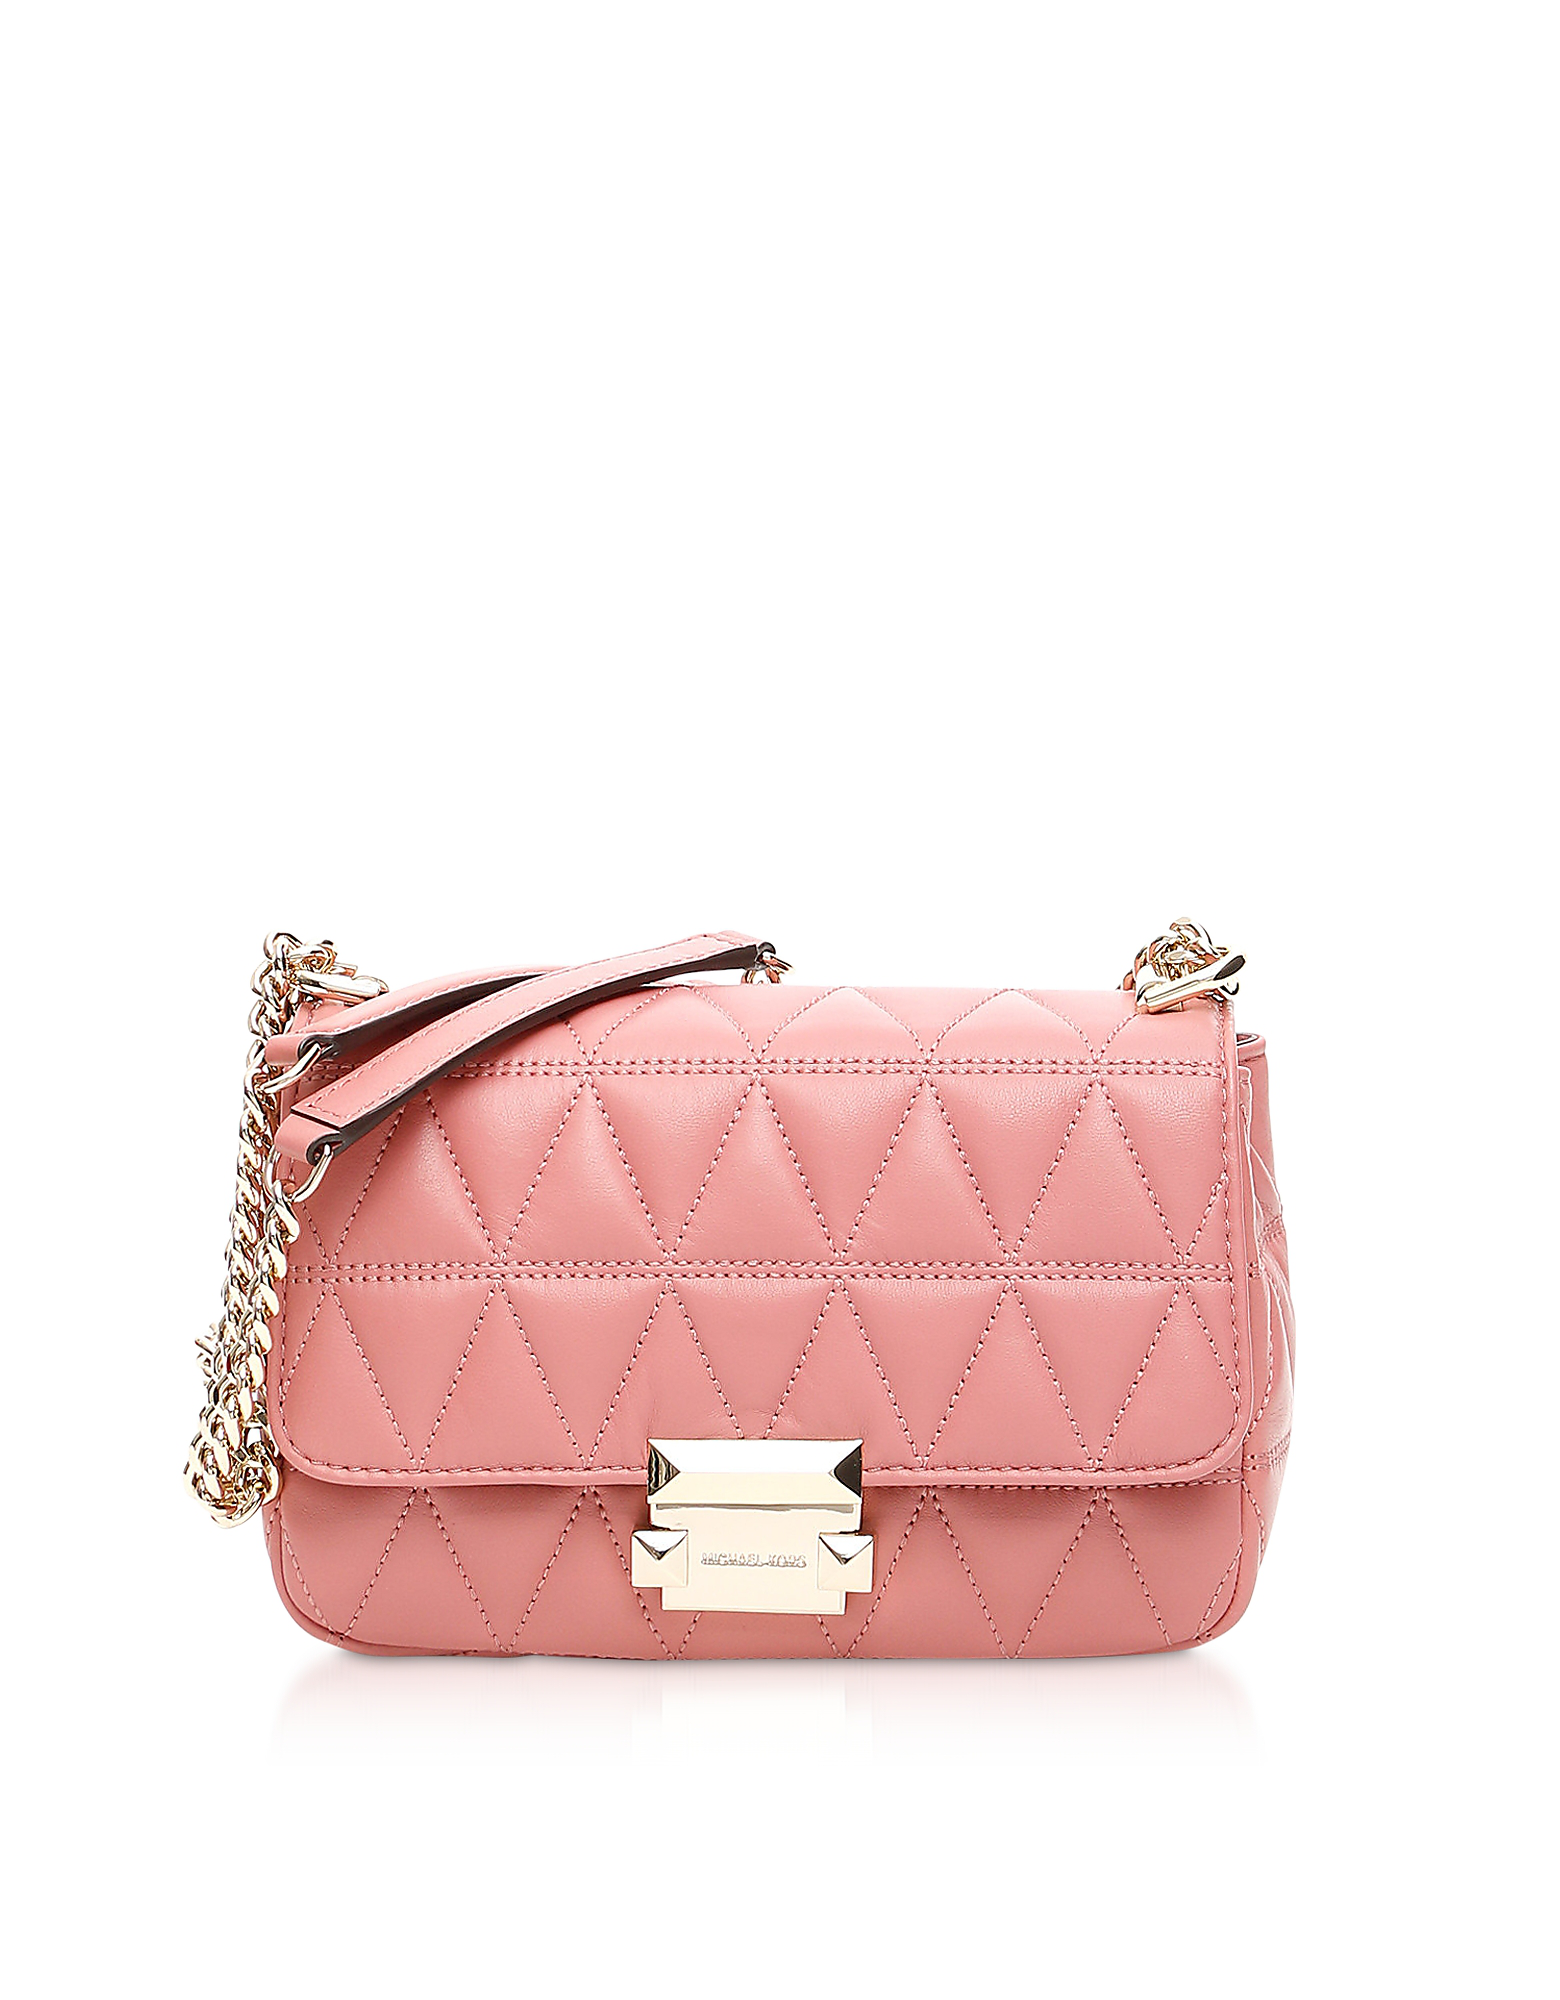 Sloan Small Quilted leather Shoulder Bag In Rose